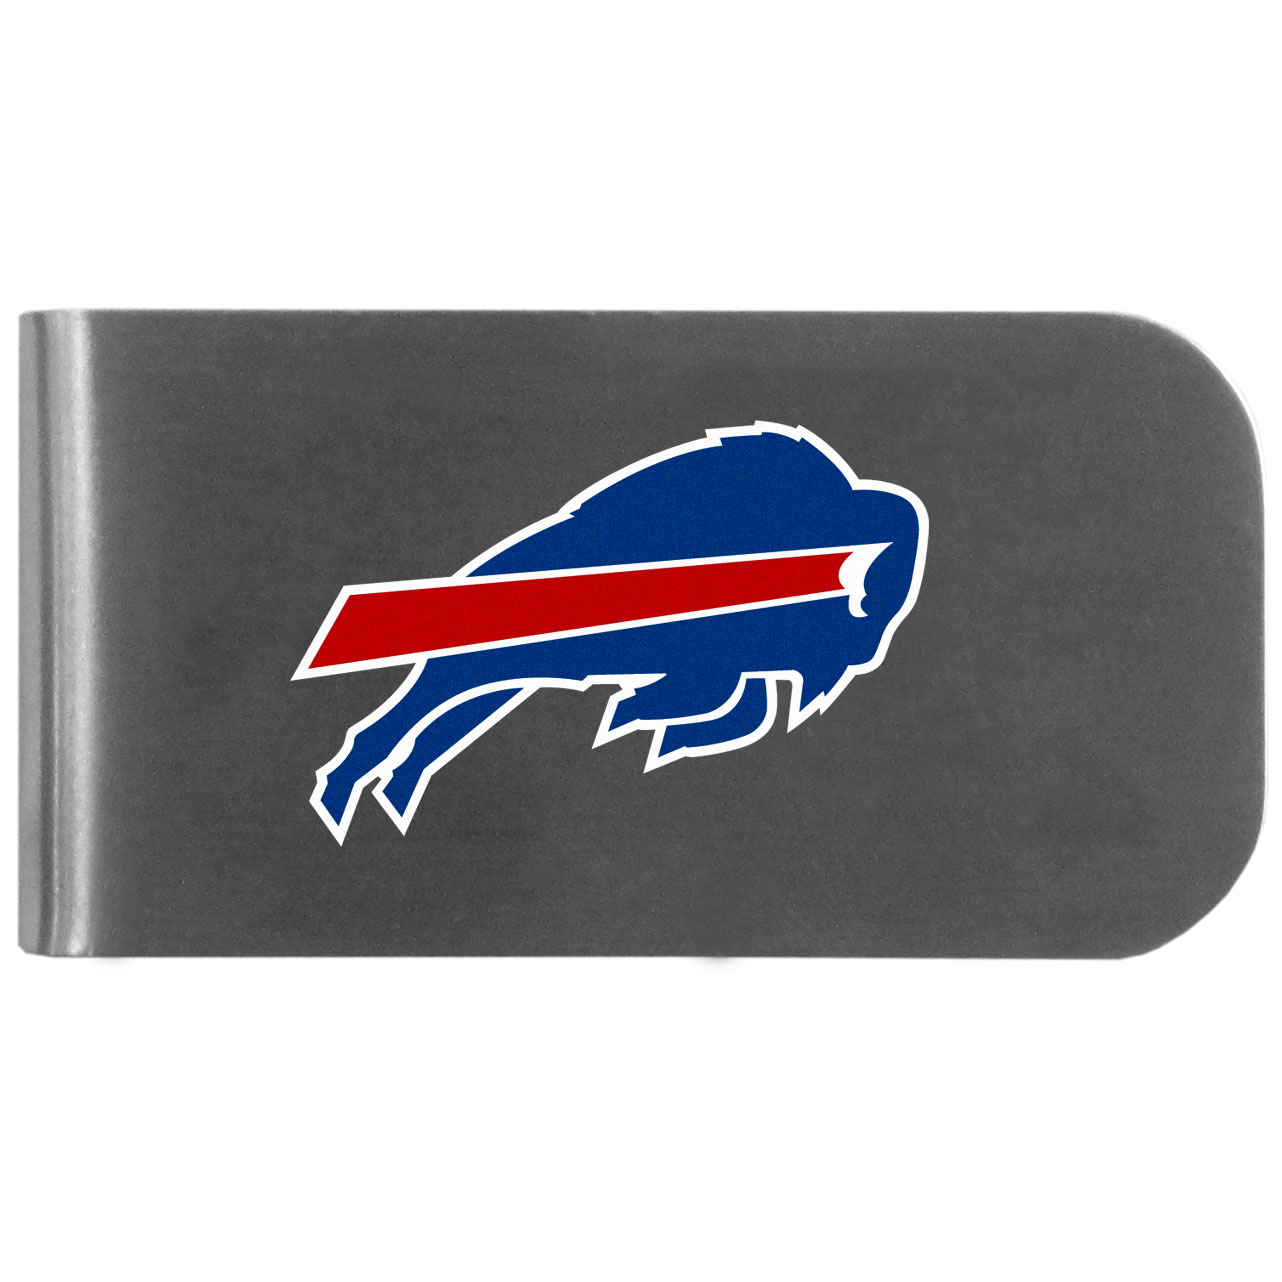 Buffalo Bills Logo Bottle Opener Money Clip - This unique money clip features a classic, brushed-metal finish with a handy bottle opener feature on the back. The clip has the Buffalo Bills logo expertly printed on the front of the clip.